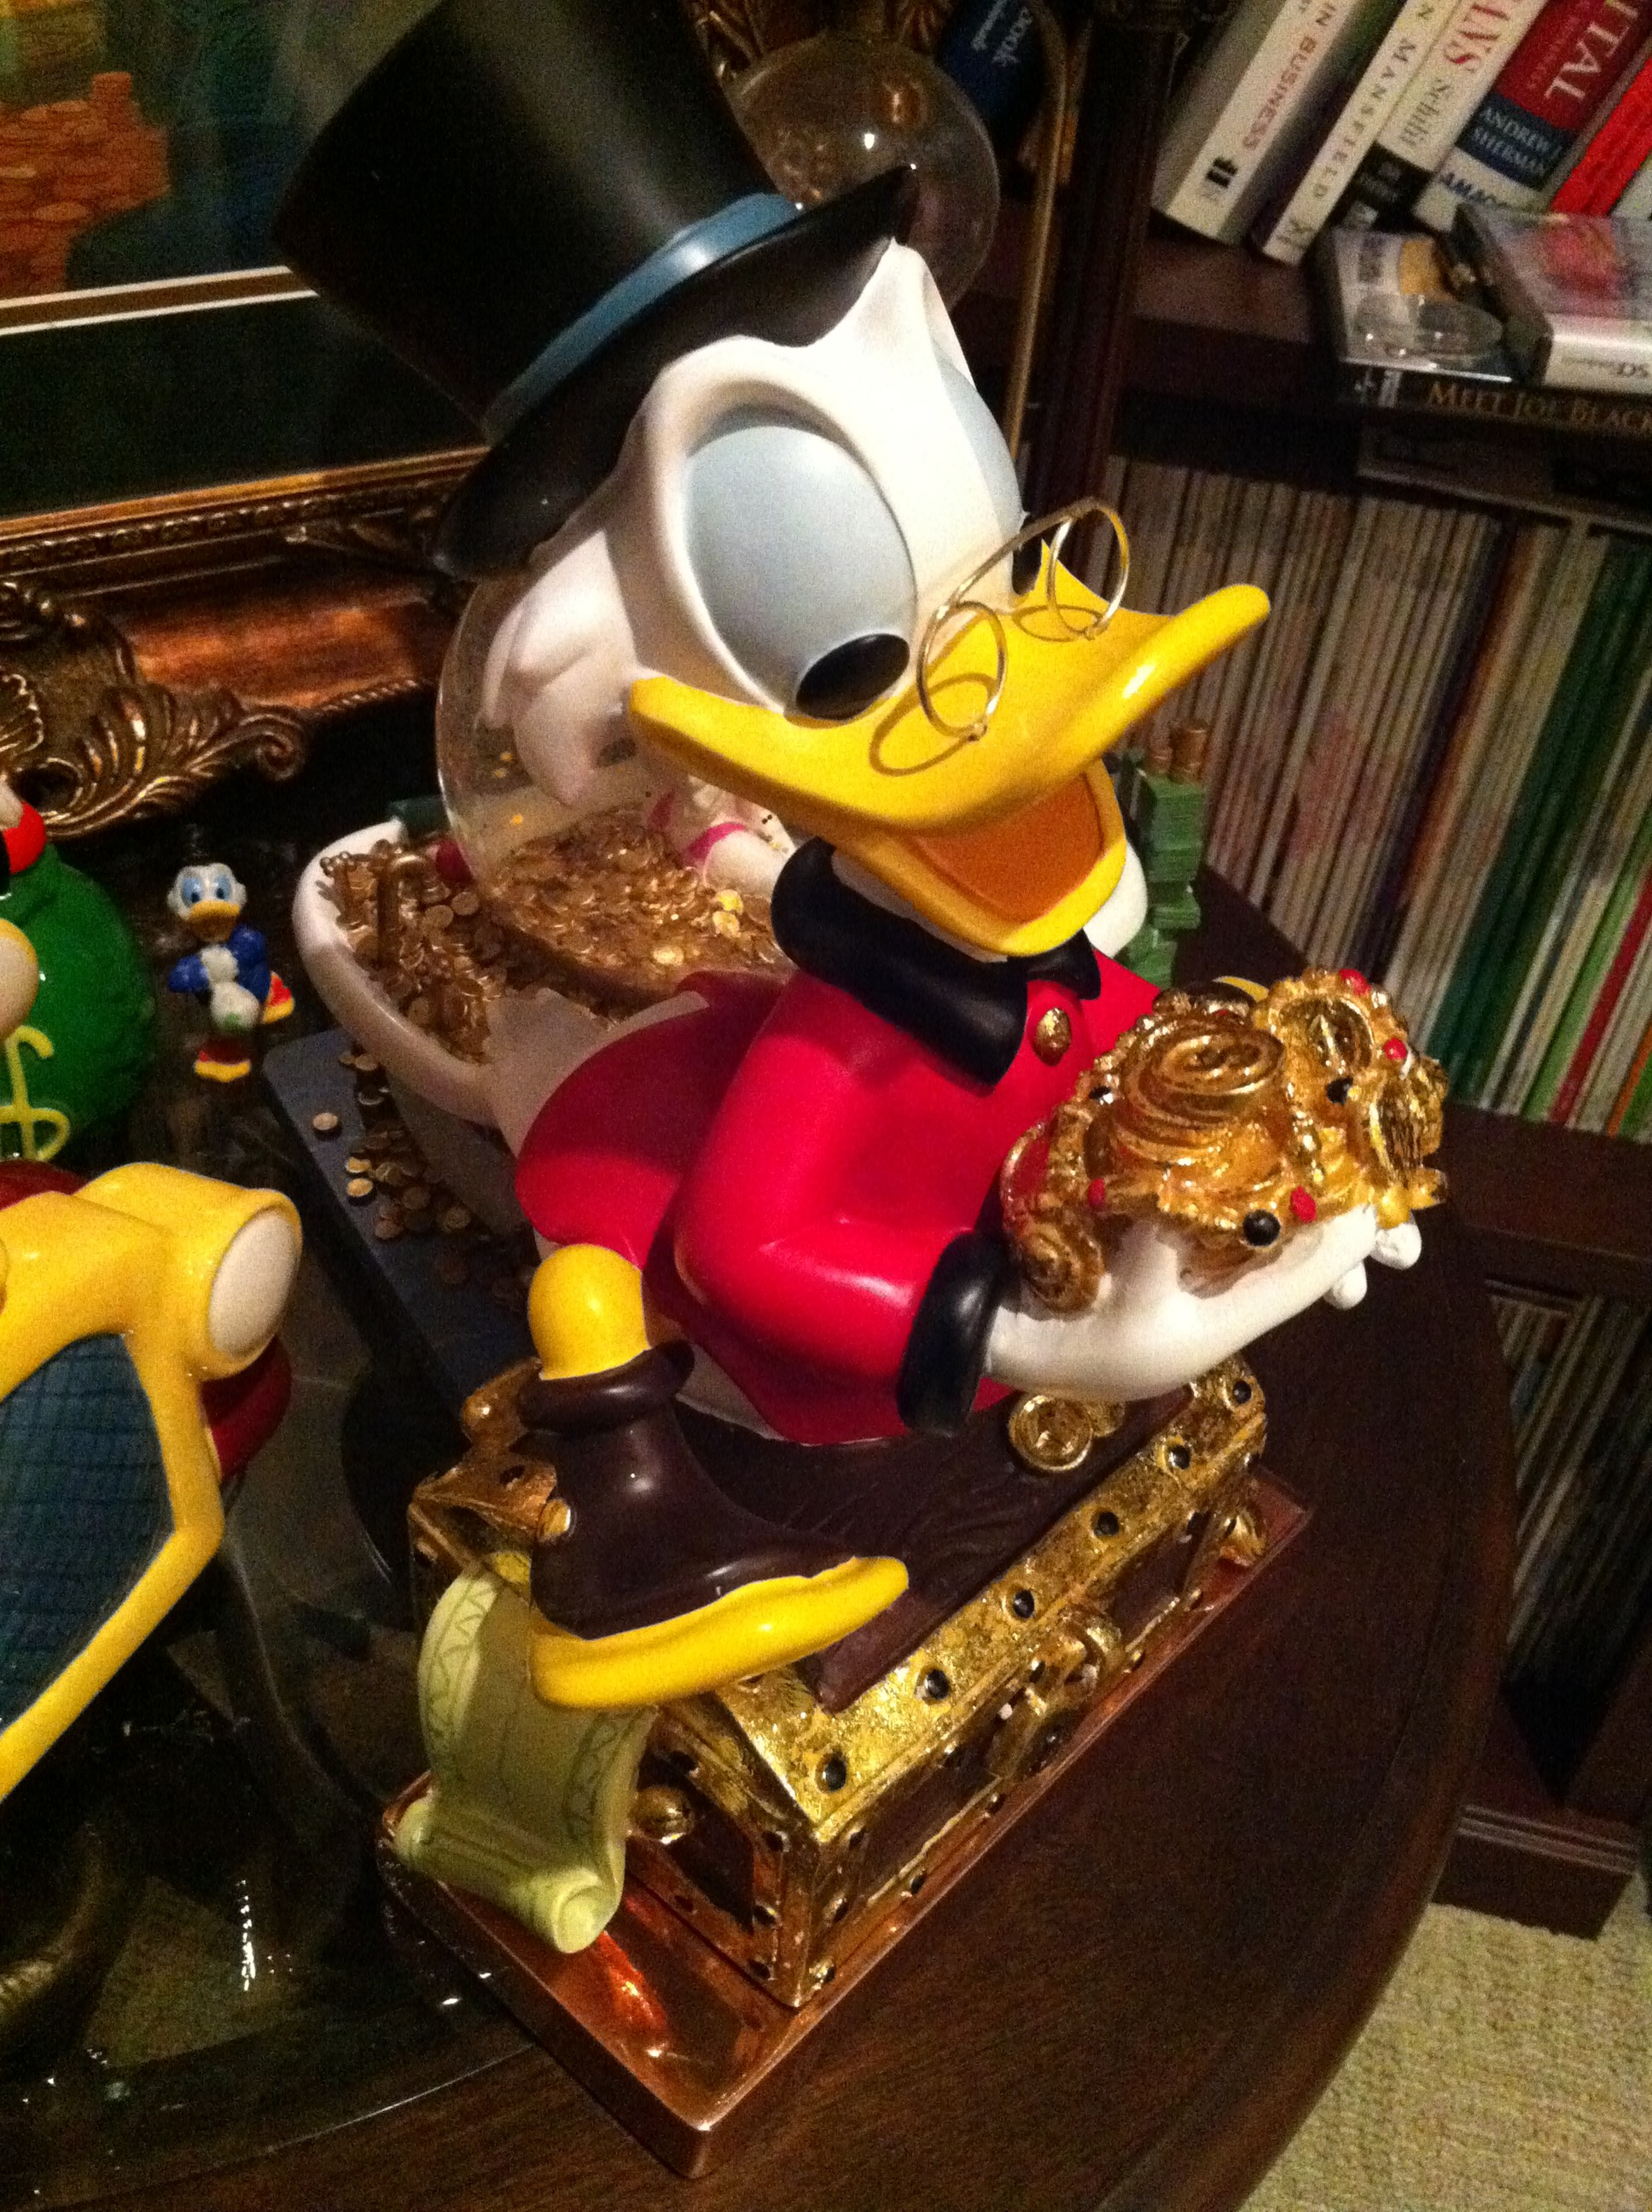 Sideview of Scrooge McDuck Figuring for the Office Collectibles Collection